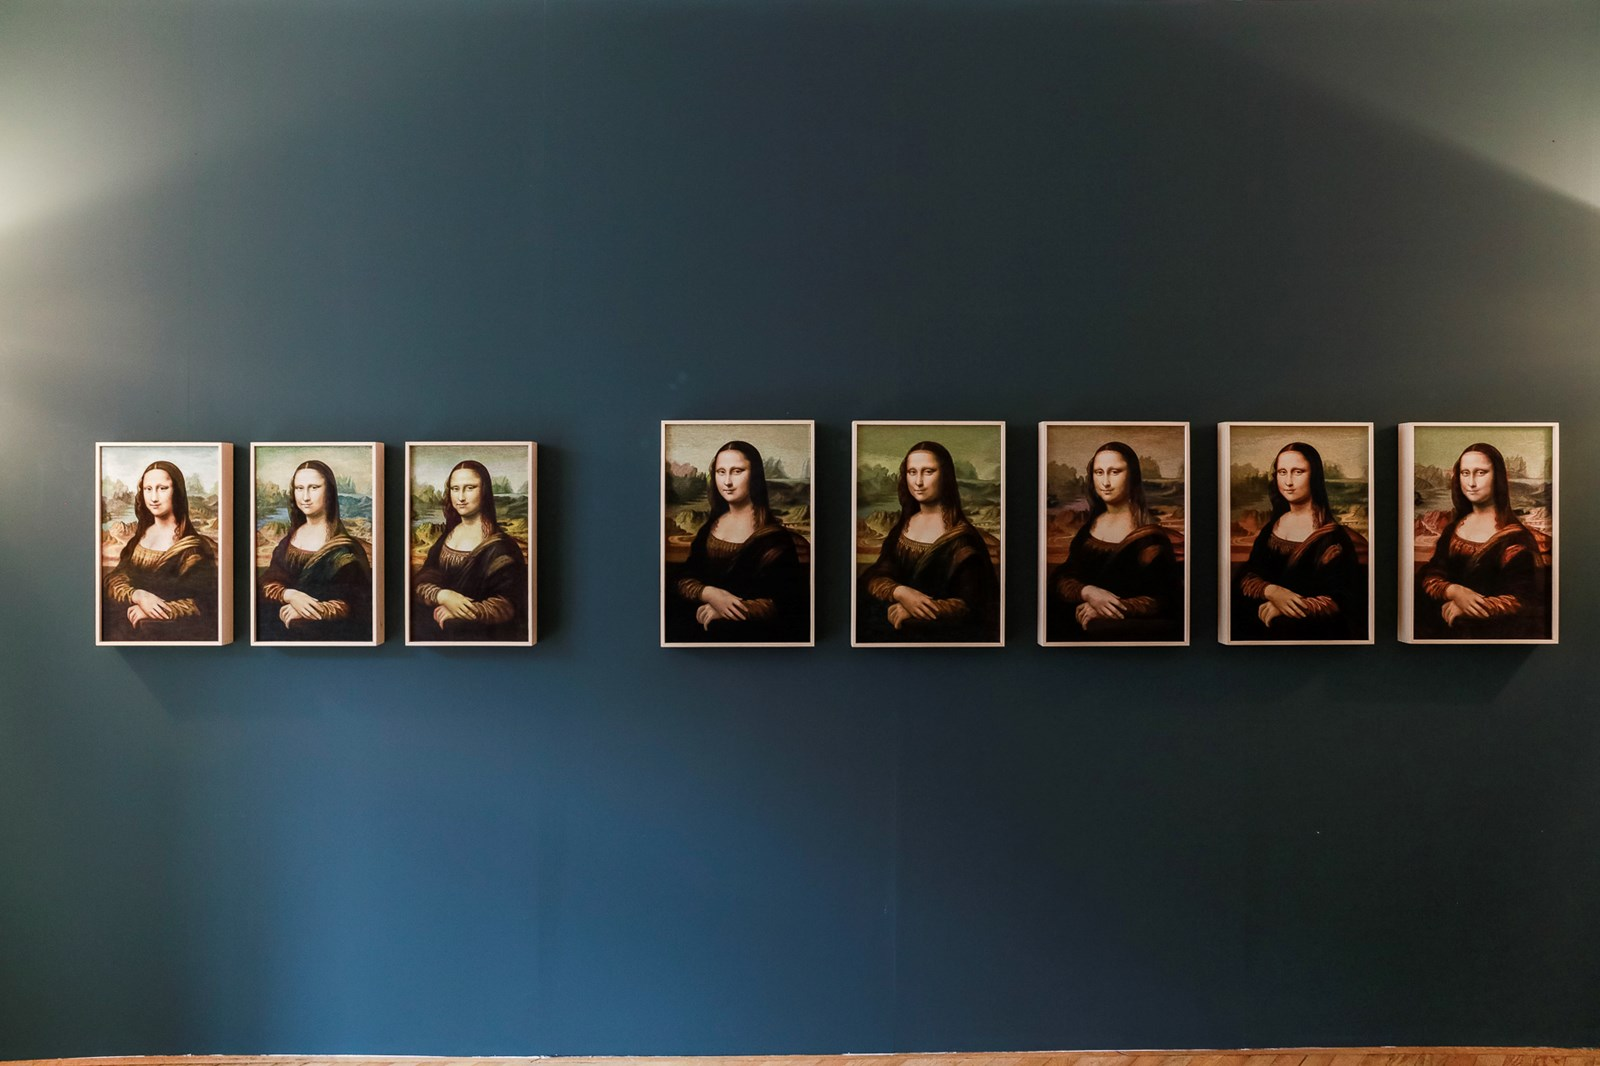 Mona Lisa and the others from the North - Kyungah Ham